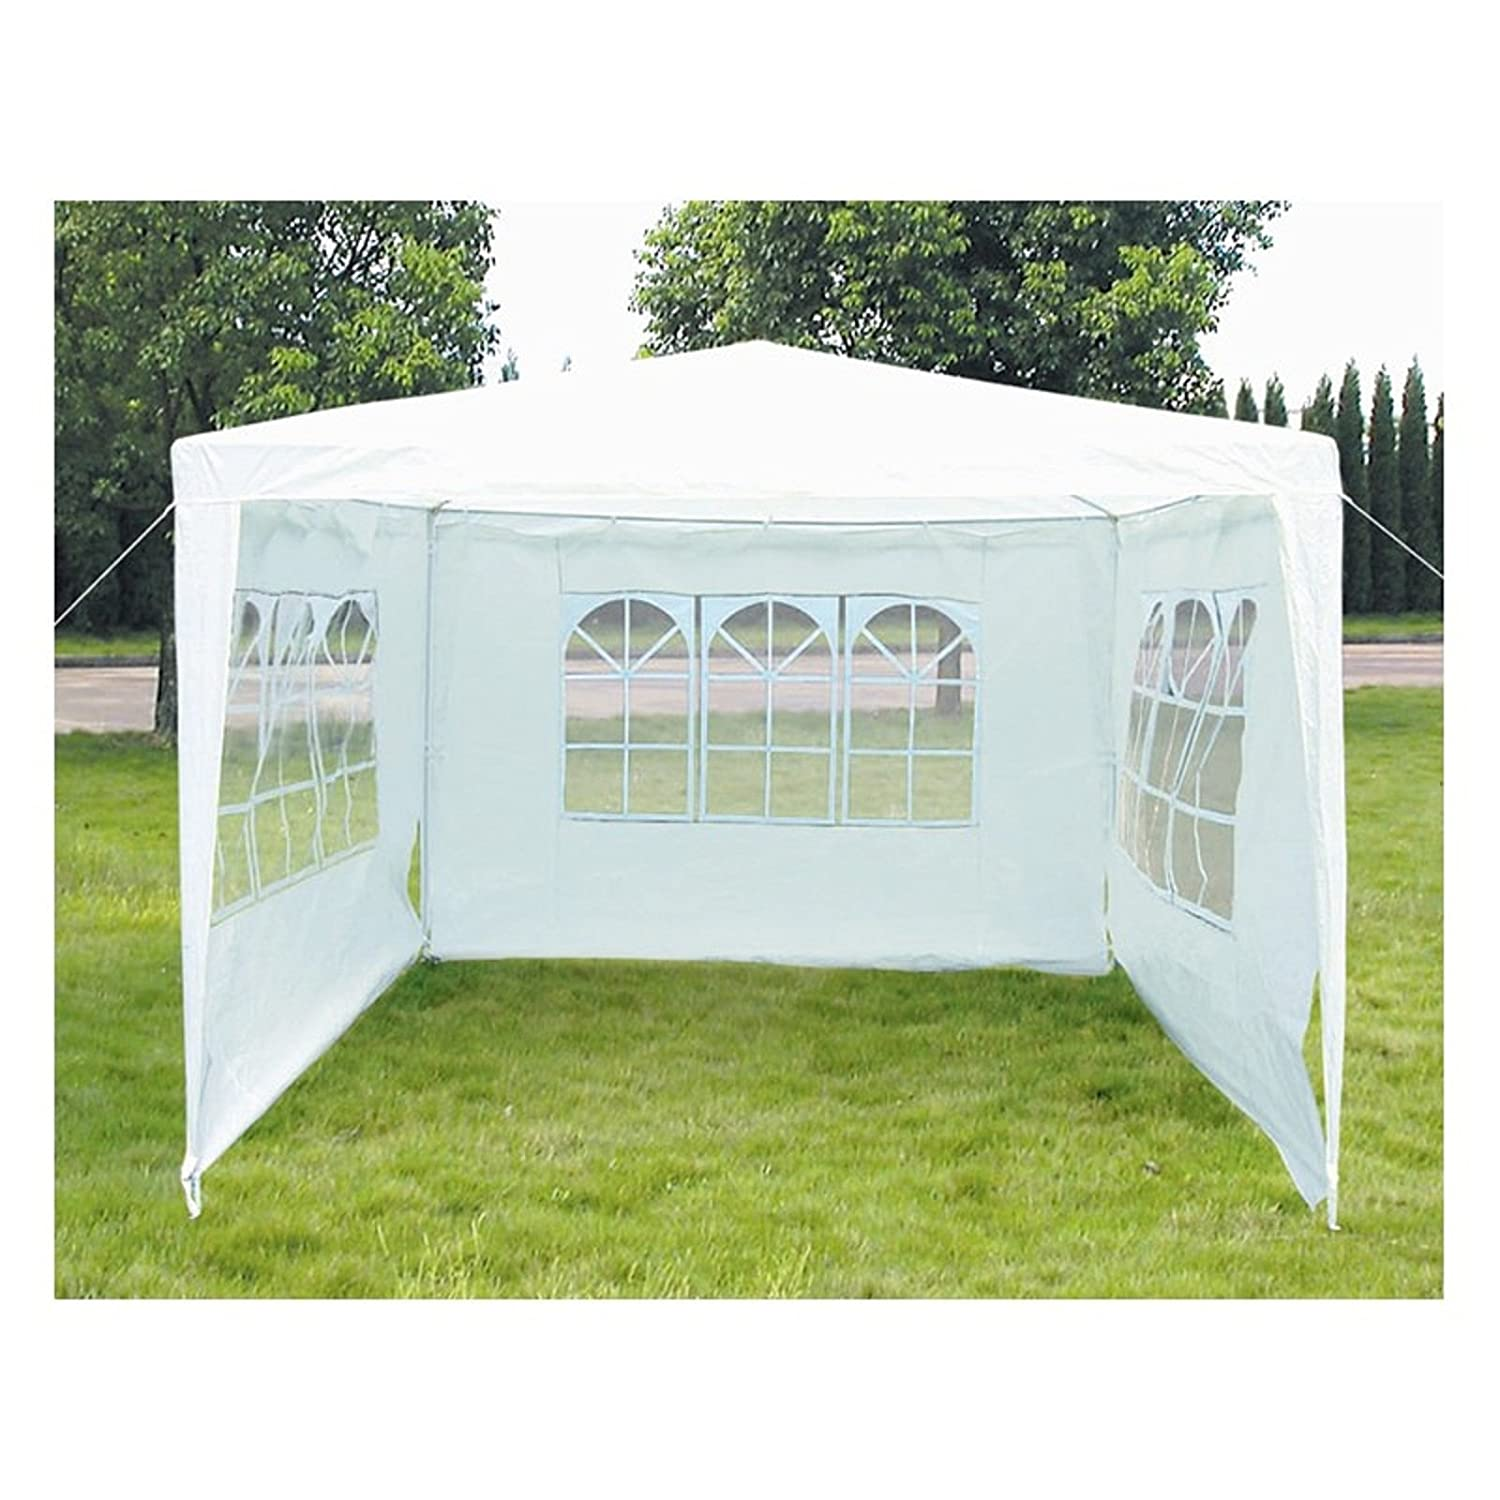 3M x 3M Garden Gazebo Outdoor Waterproof Marquee Party Tent Awning White Amazon.co.uk Garden u0026 Outdoors  sc 1 st  Amazon UK & 3M x 3M Garden Gazebo Outdoor Waterproof Marquee Party Tent Awning ...